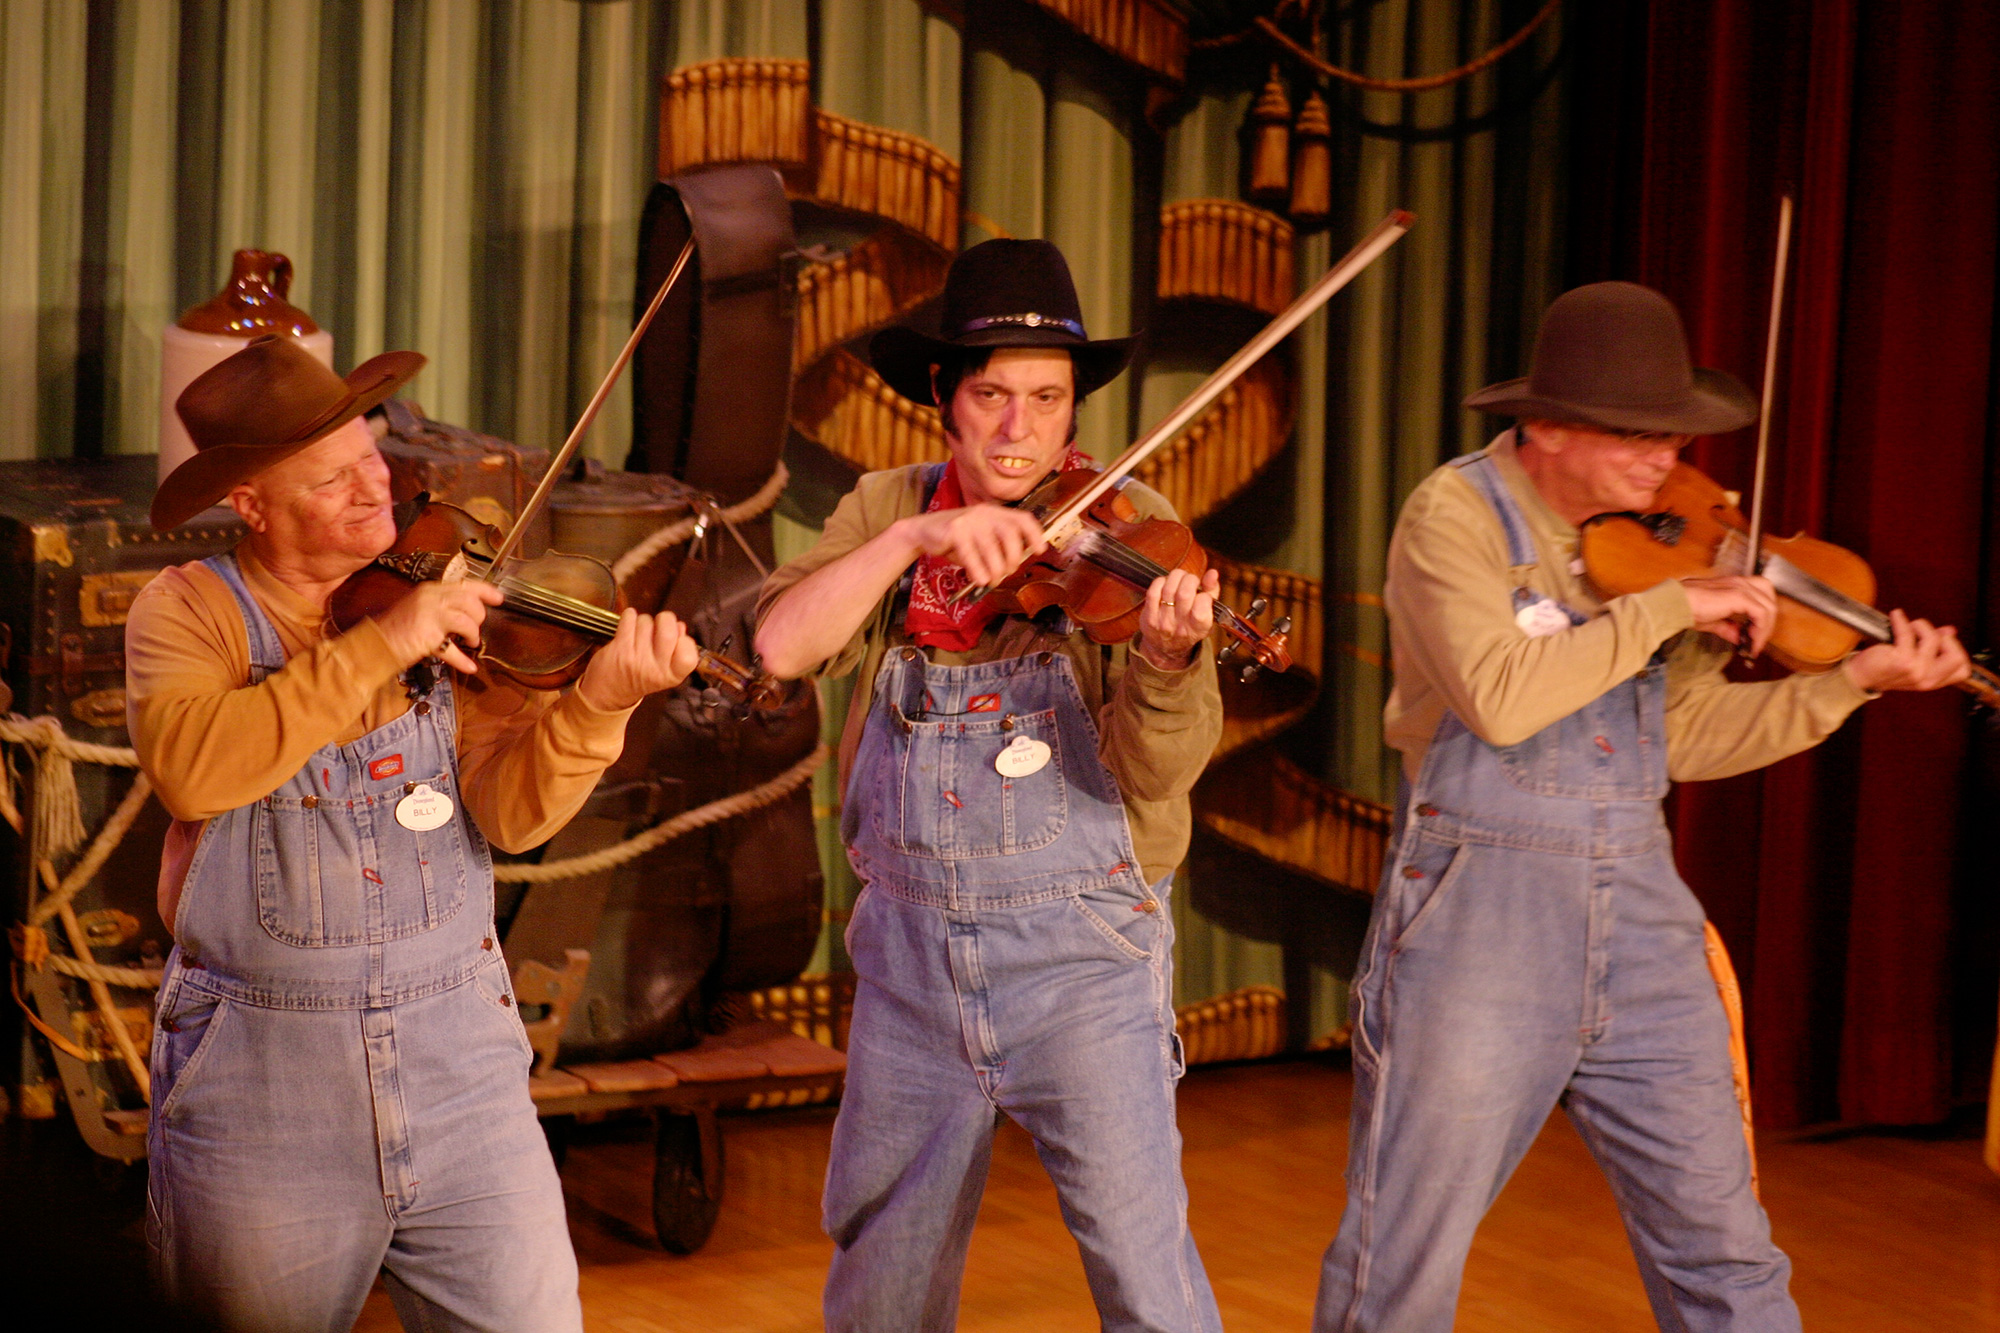 Billy Hill and the Hillbillies